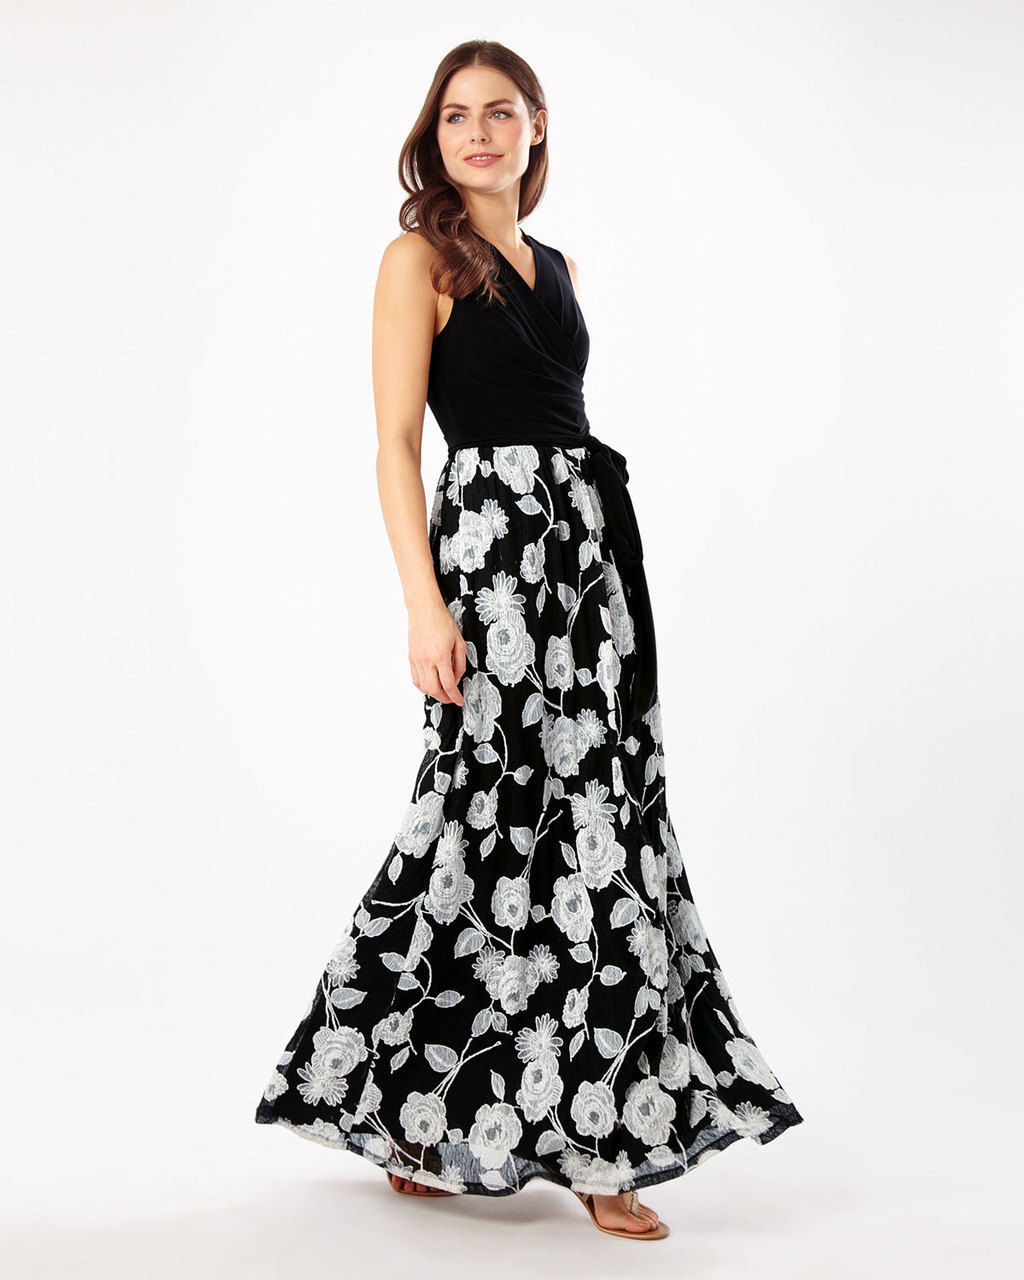 Gwenda Lace Dress - neckline: v-neck; sleeve style: sleeveless; style: maxi dress; length: ankle length; waist detail: belted waist/tie at waist/drawstring; secondary colour: white; predominant colour: black; occasions: evening; fit: fitted at waist & bust; fibres: polyester/polyamide - 100%; hip detail: soft pleats at hip/draping at hip/flared at hip; sleeve length: sleeveless; trends: monochrome; texture group: sheer fabrics/chiffon/organza etc.; pattern type: fabric; pattern size: standard; pattern: florals; season: s/s 2016